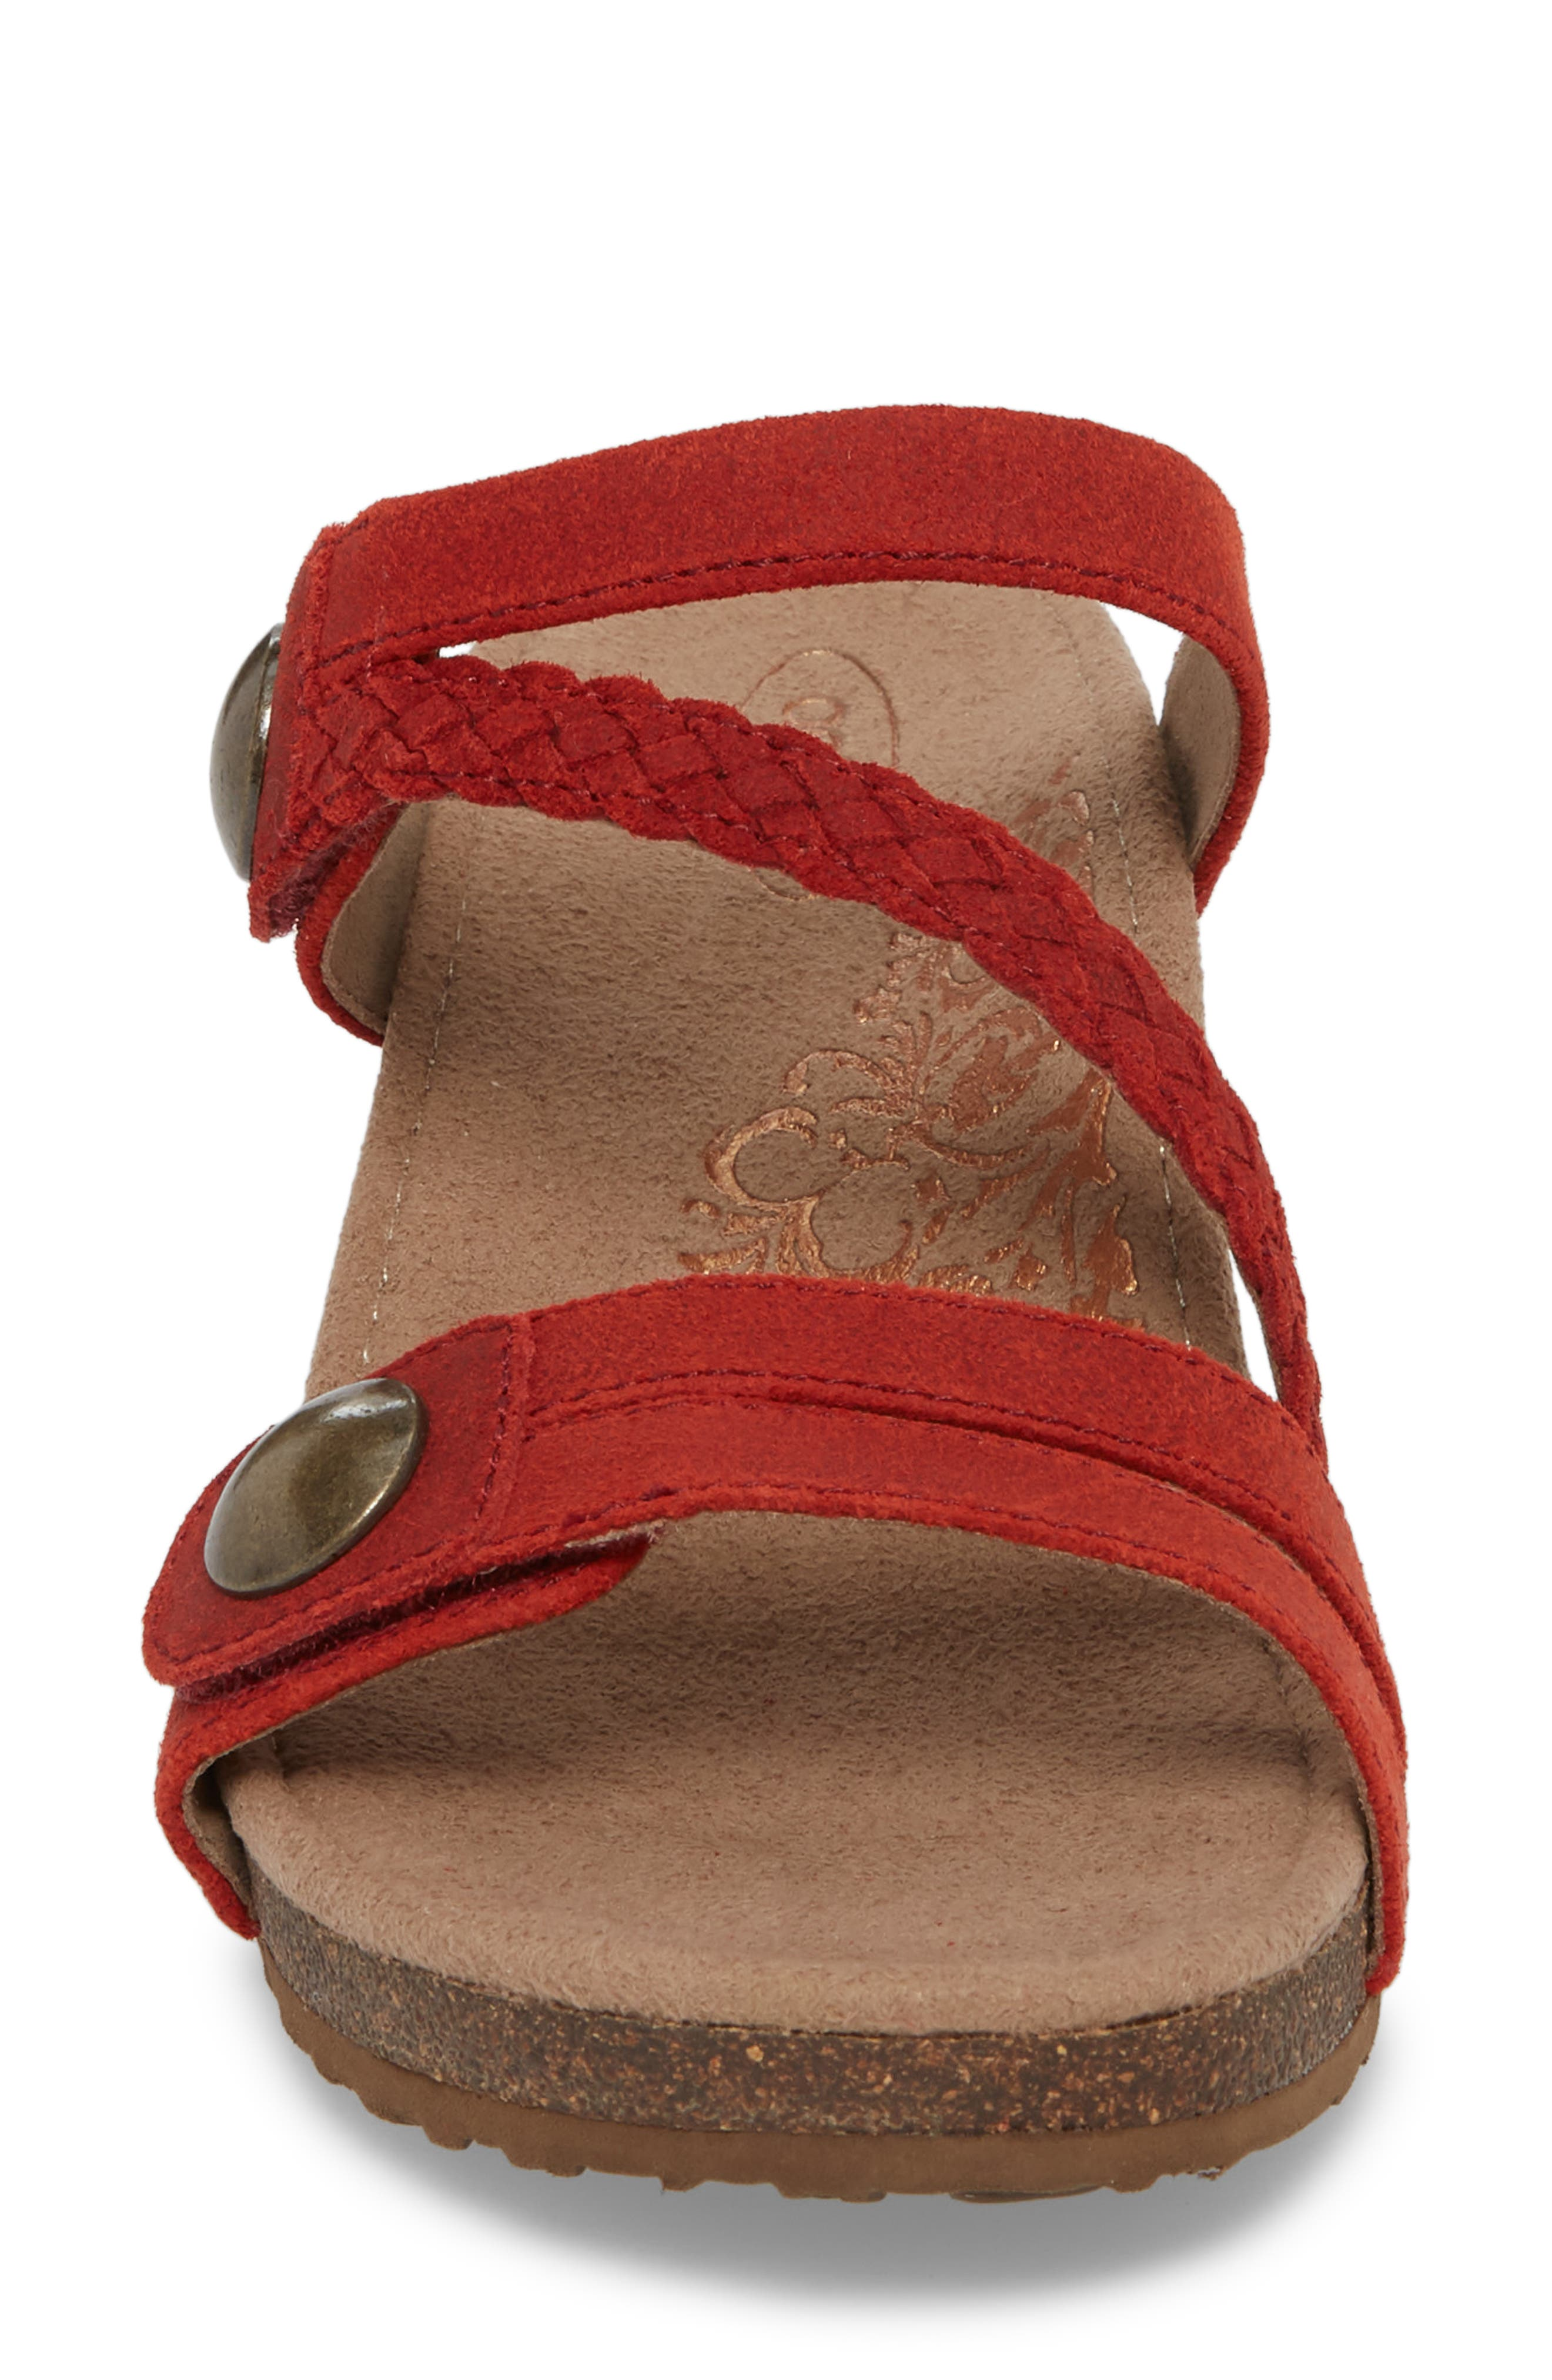 Lydia Strappy Wedge Sandal,                             Alternate thumbnail 4, color,                             Cayenne Leather